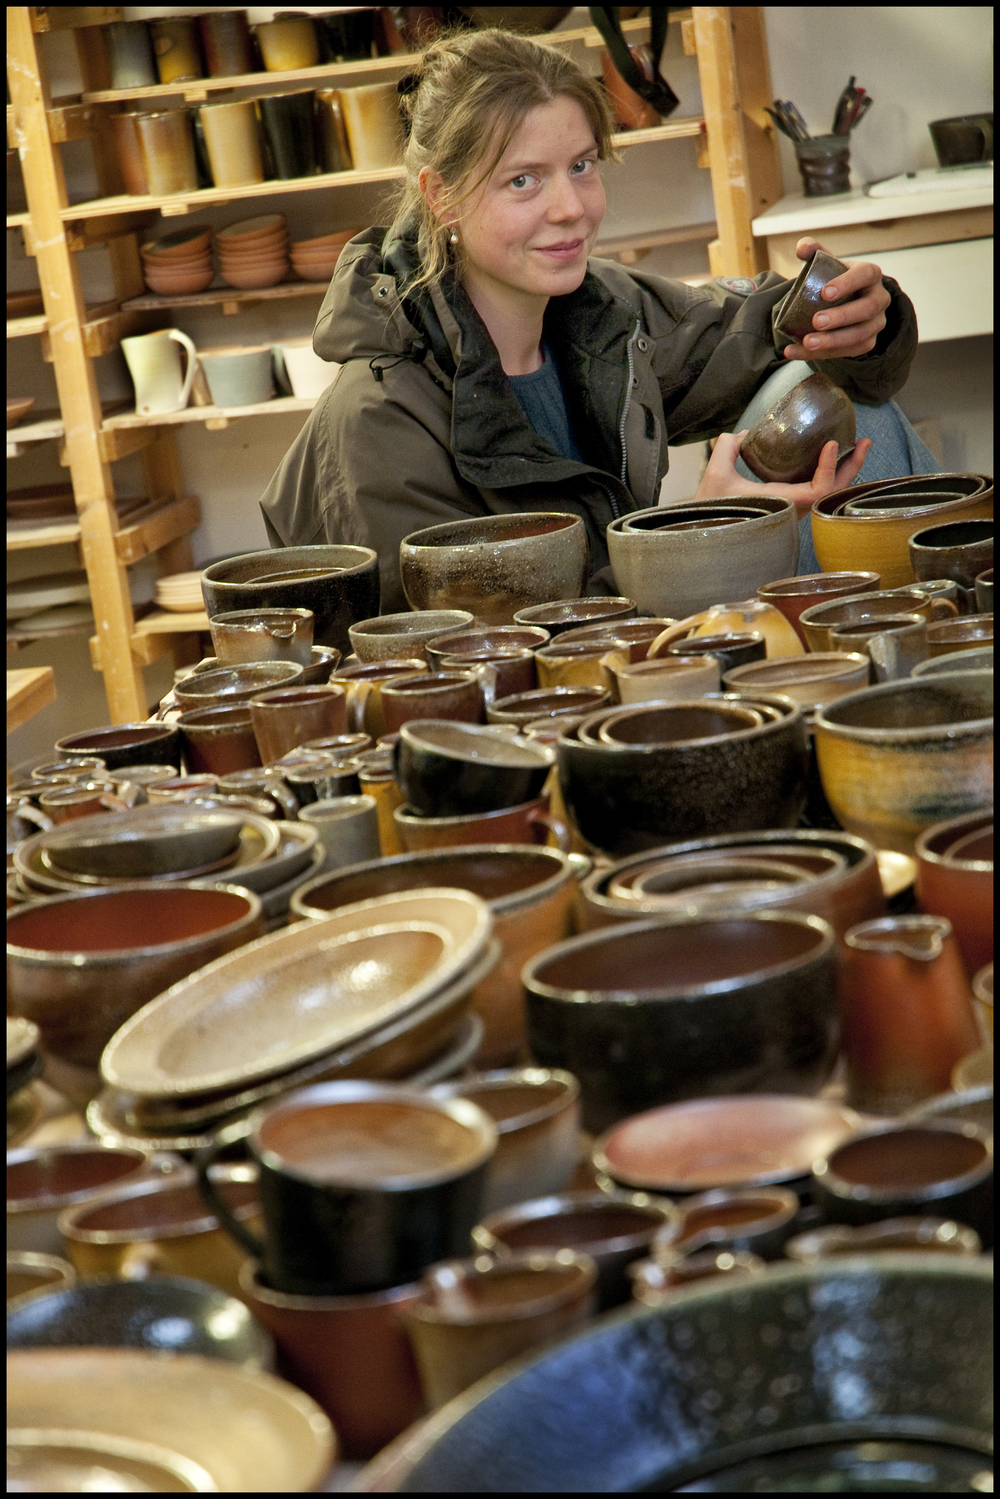 Production Potter & Apprentice Coordinator, Britta Wengeler-James